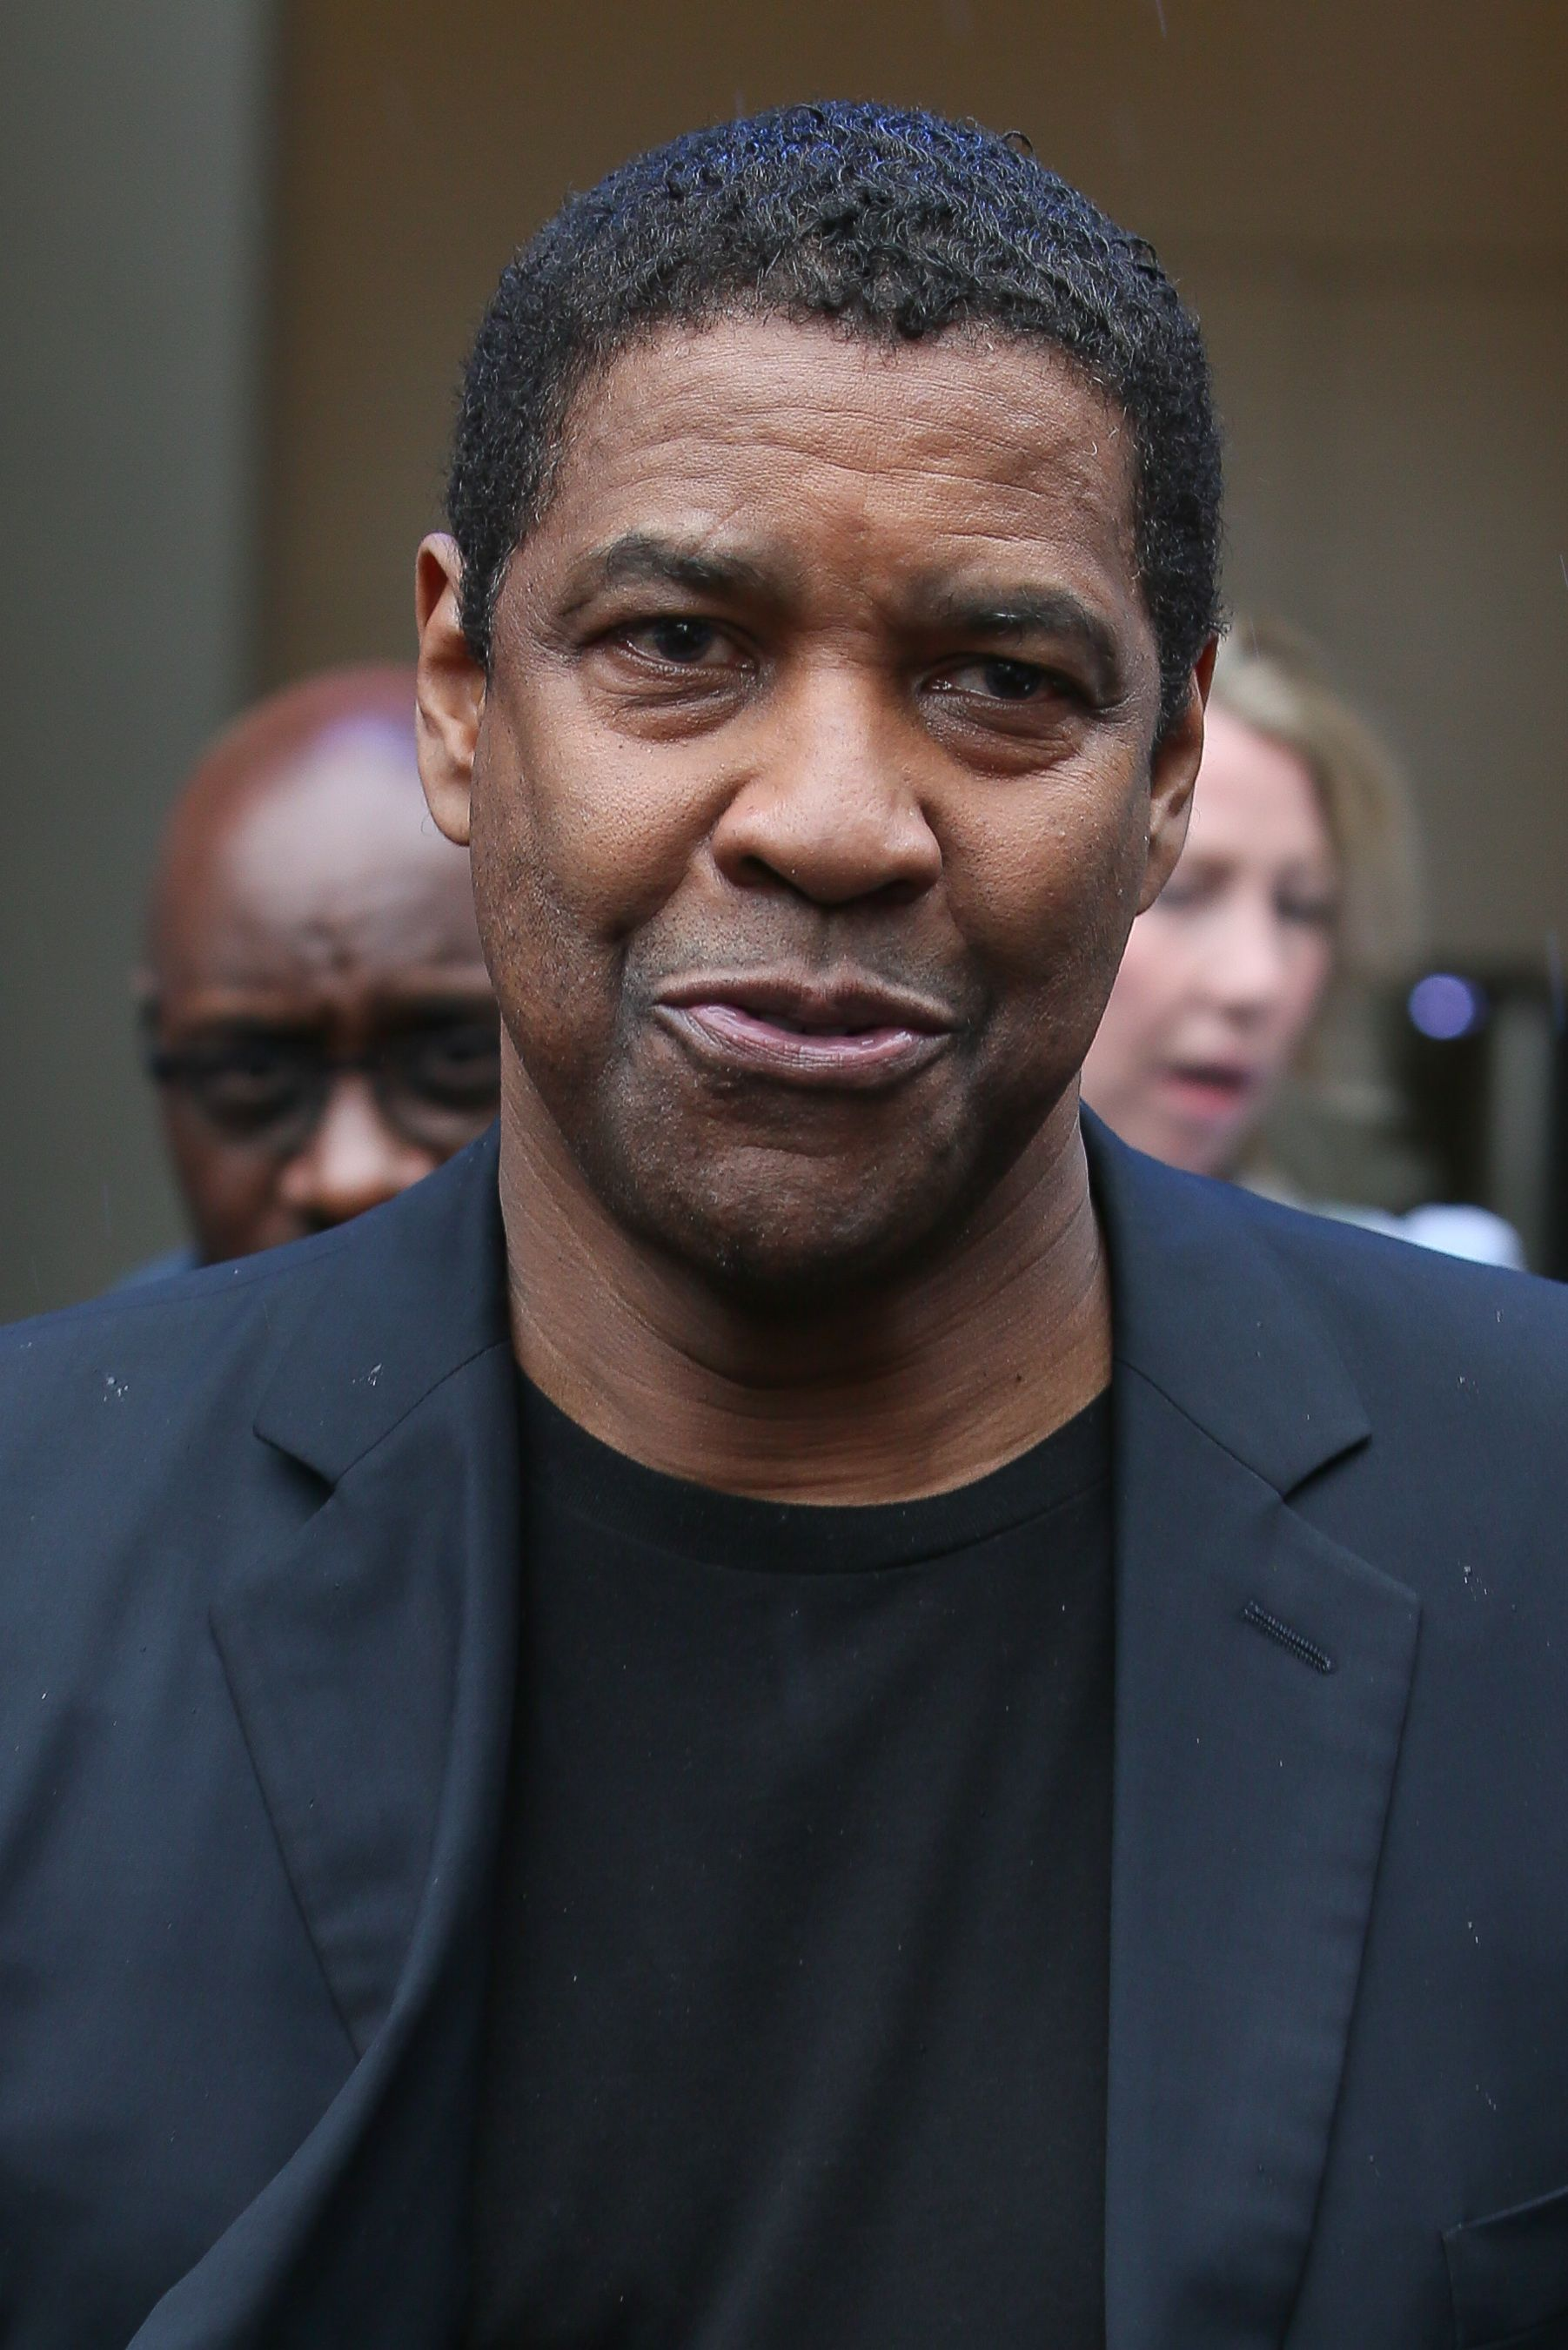 Denzel Washington at 63 The penultimate leading man continues to star in critically acclaimed films like Fences and Roman J. Israel, Esq.